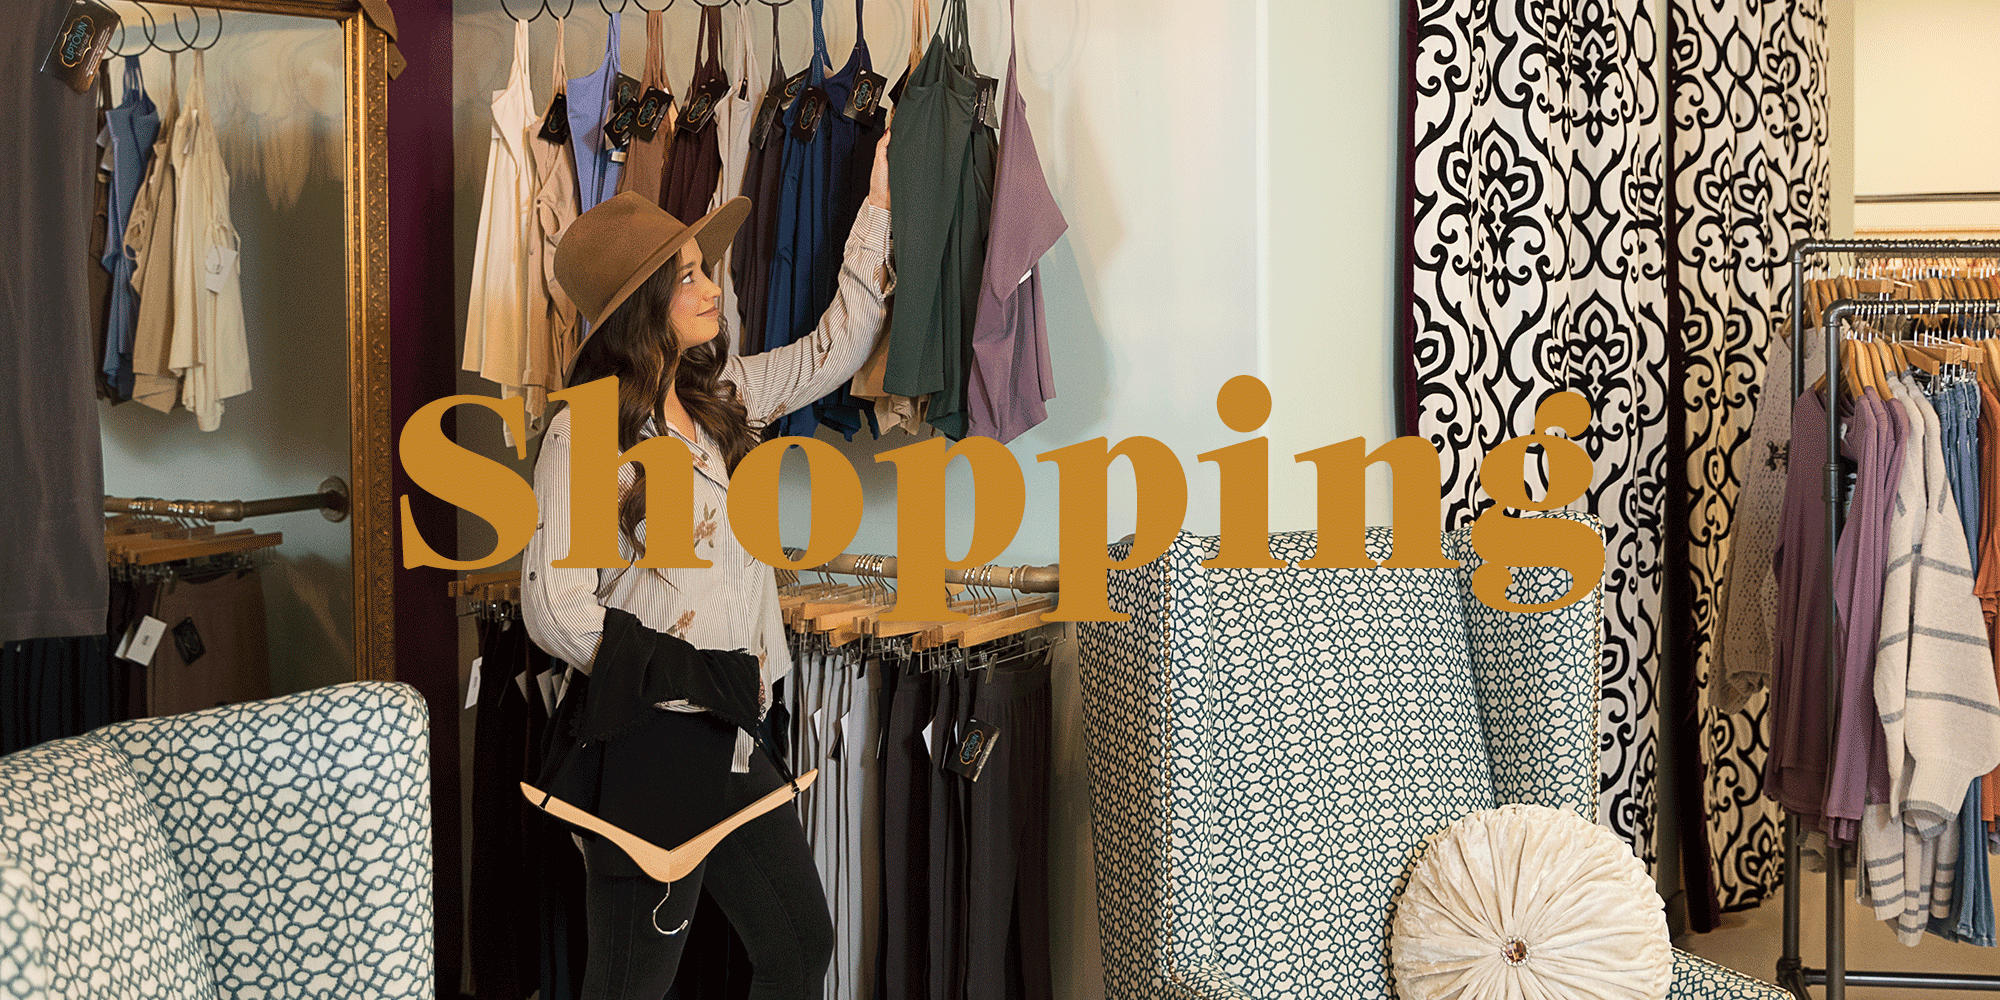 The Uptown Boutique, Springfield, MO